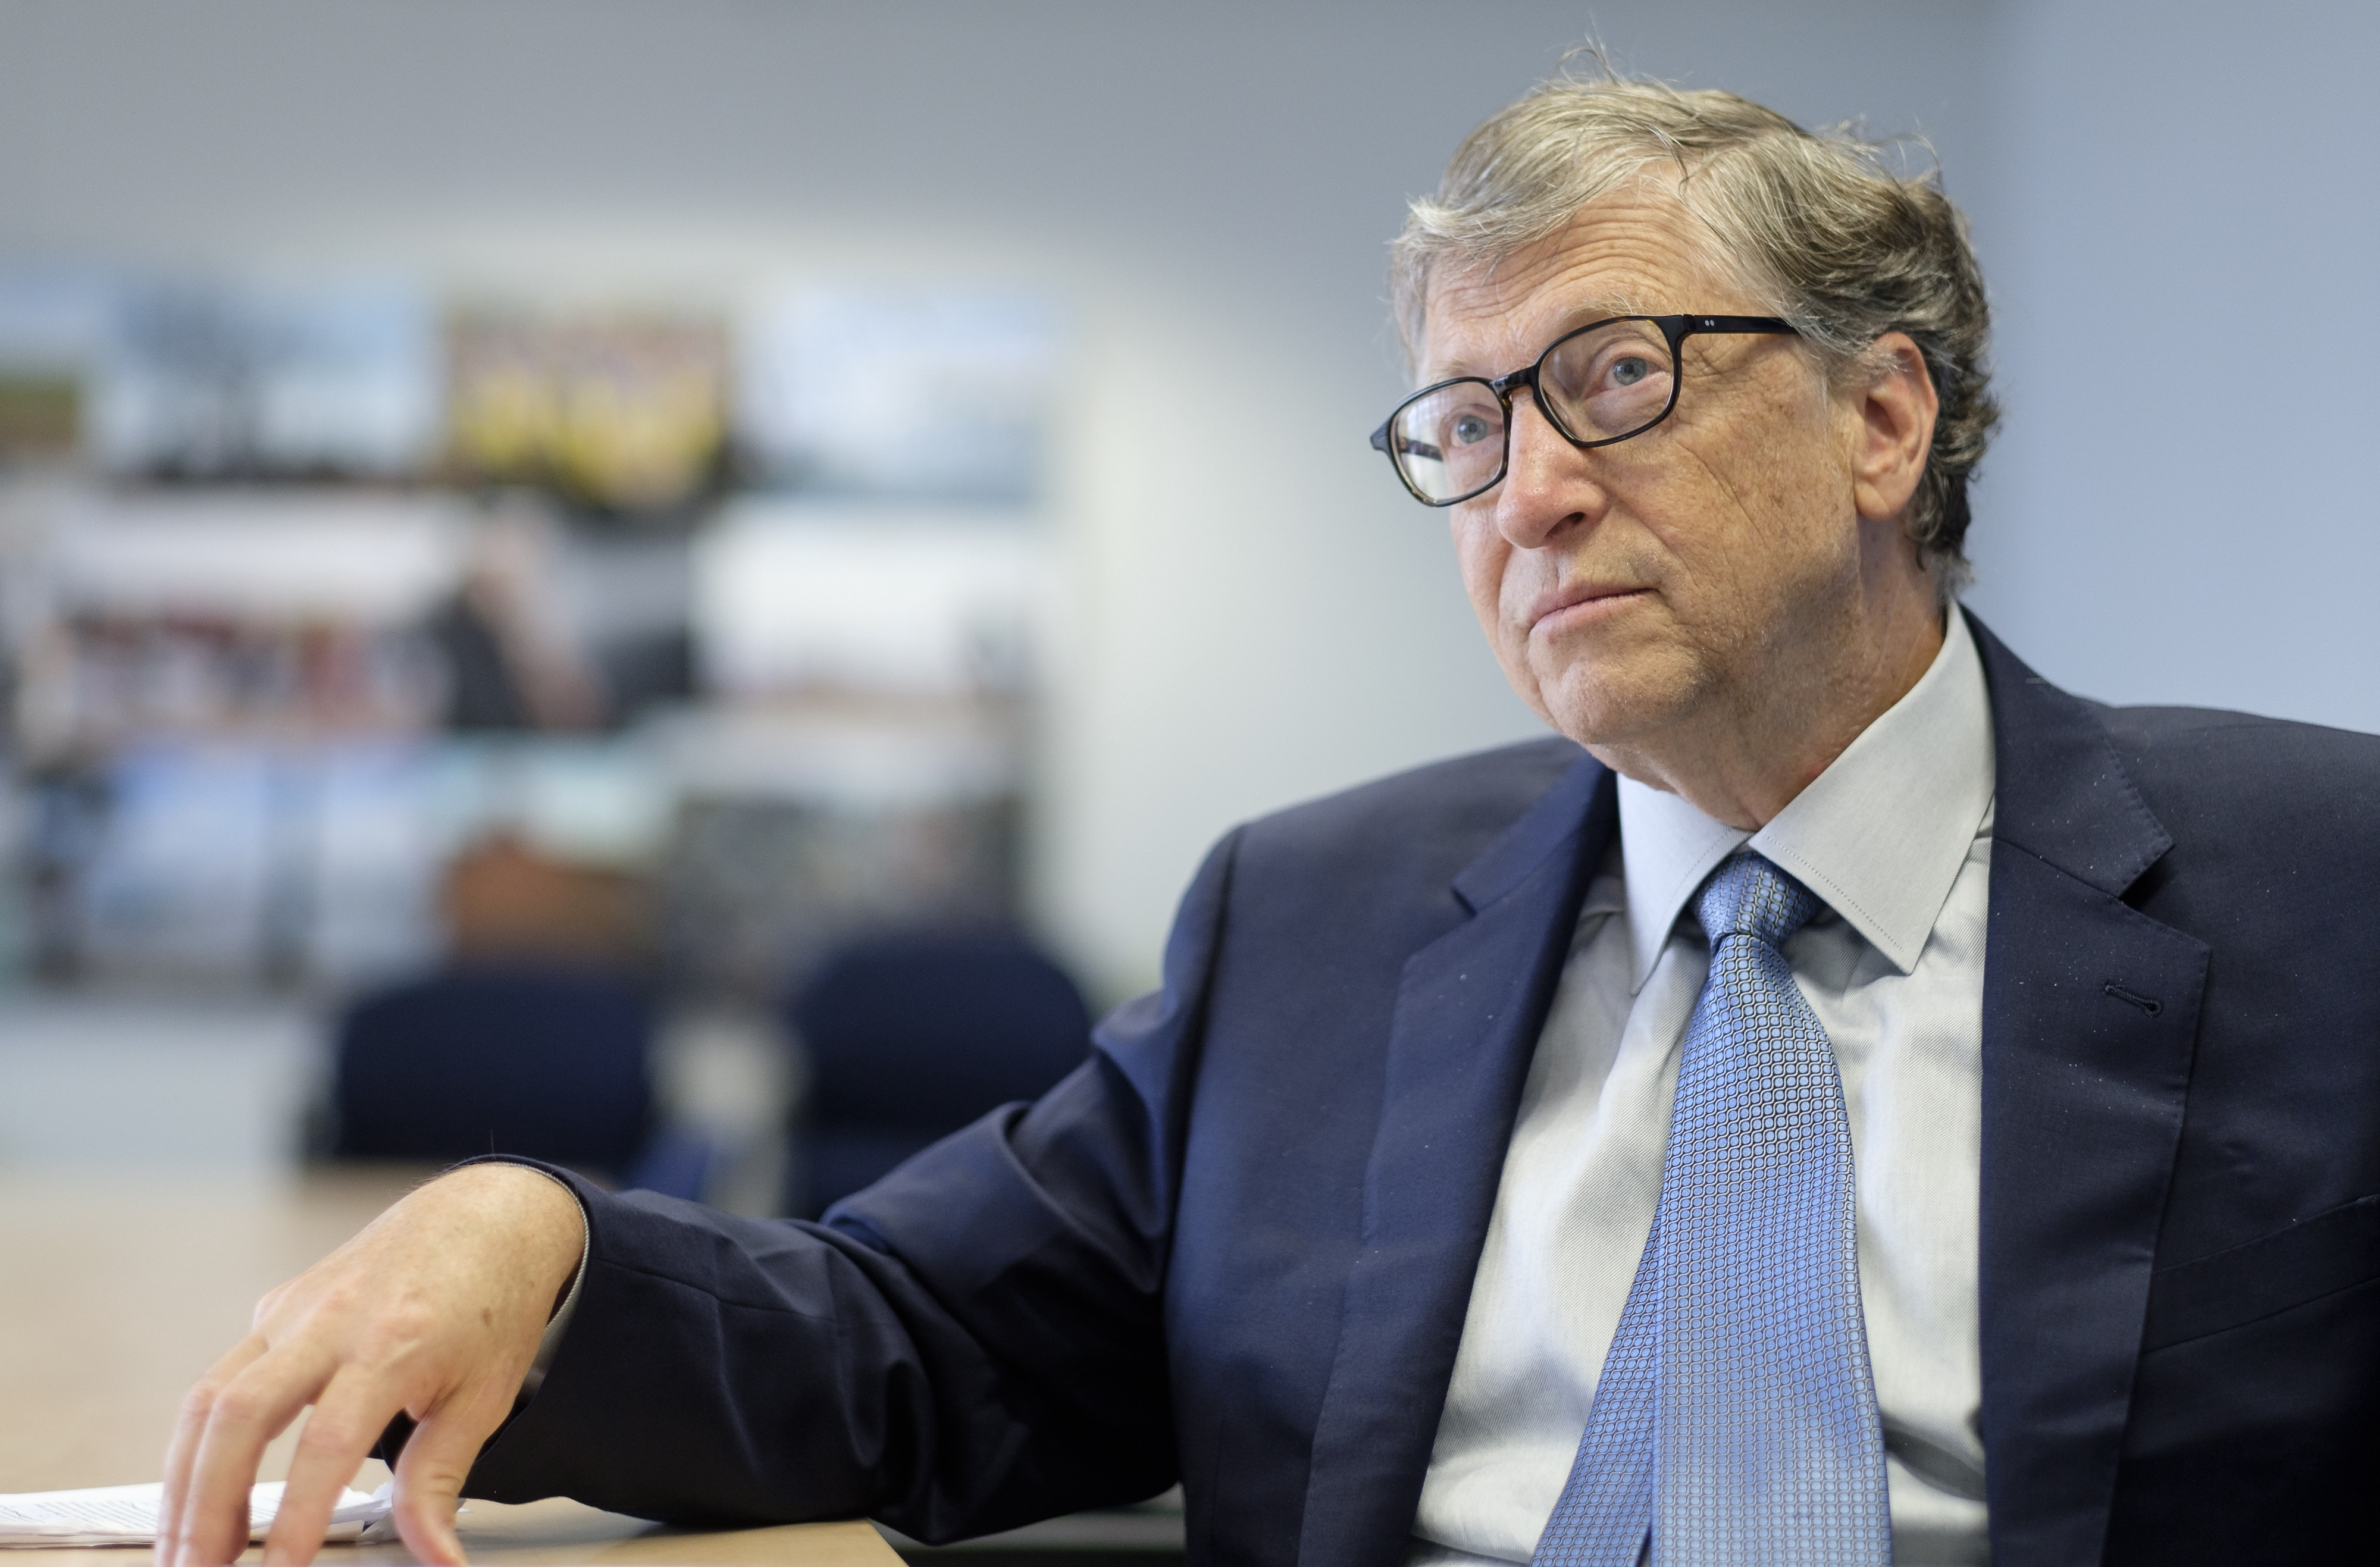 Bill Gates: It's Not Too Early To Think About the Next Pandemic